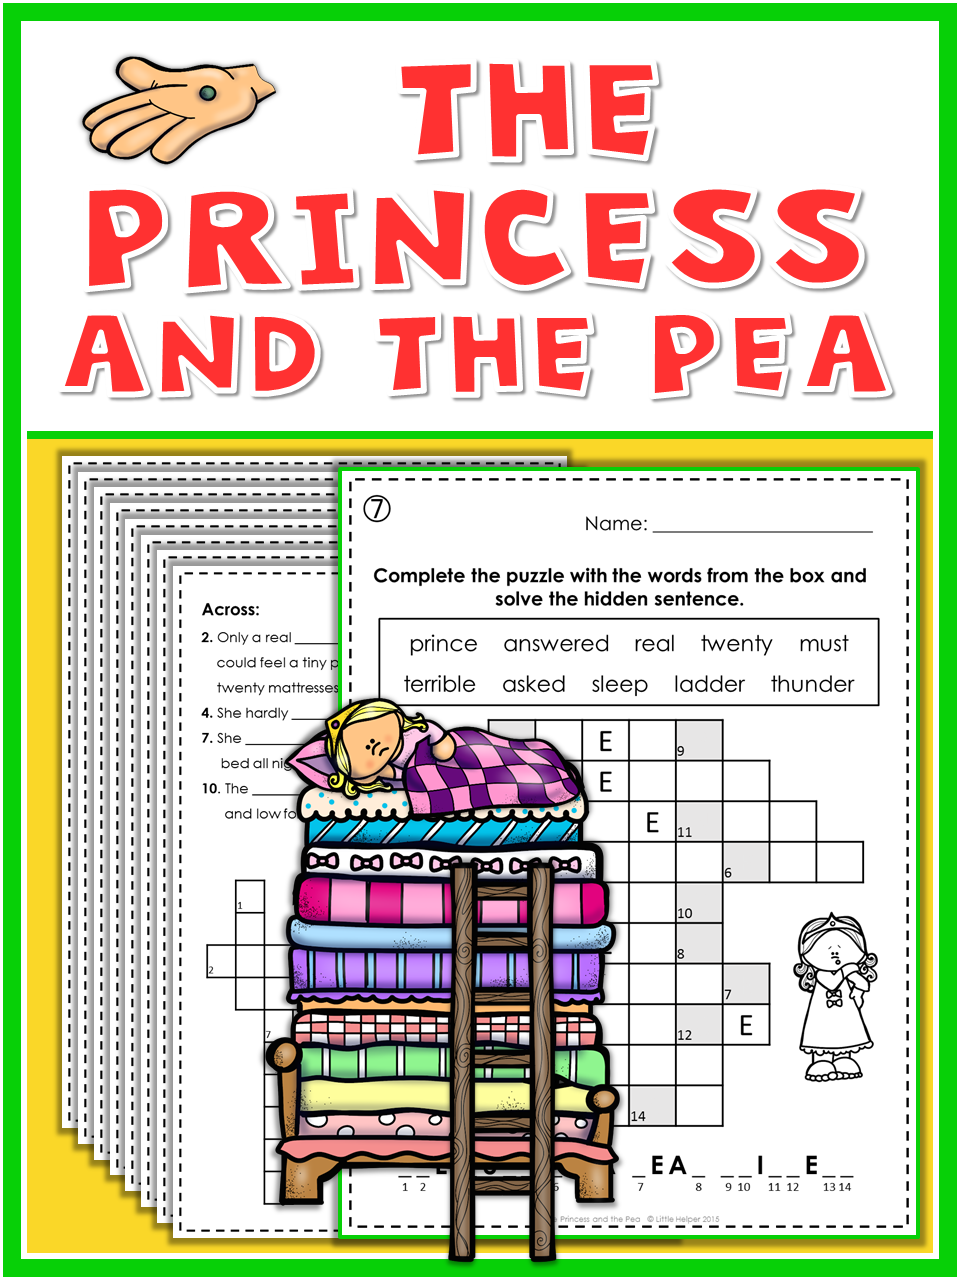 Princess and the pea writing activities